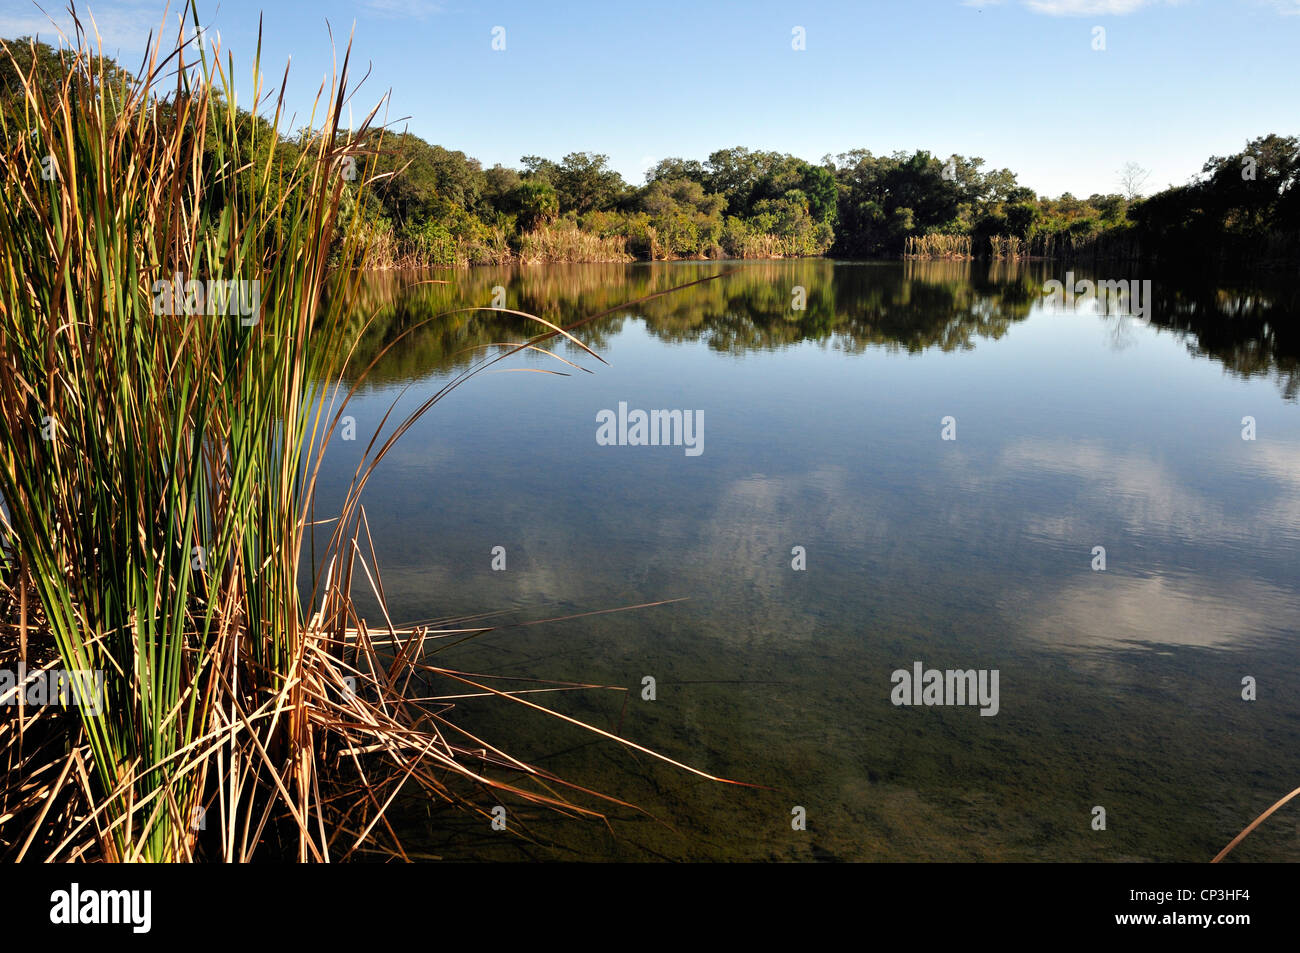 Merritt Island national Wildlife Refuge has large areas of marshland which attract birds and other animals - Stock Image